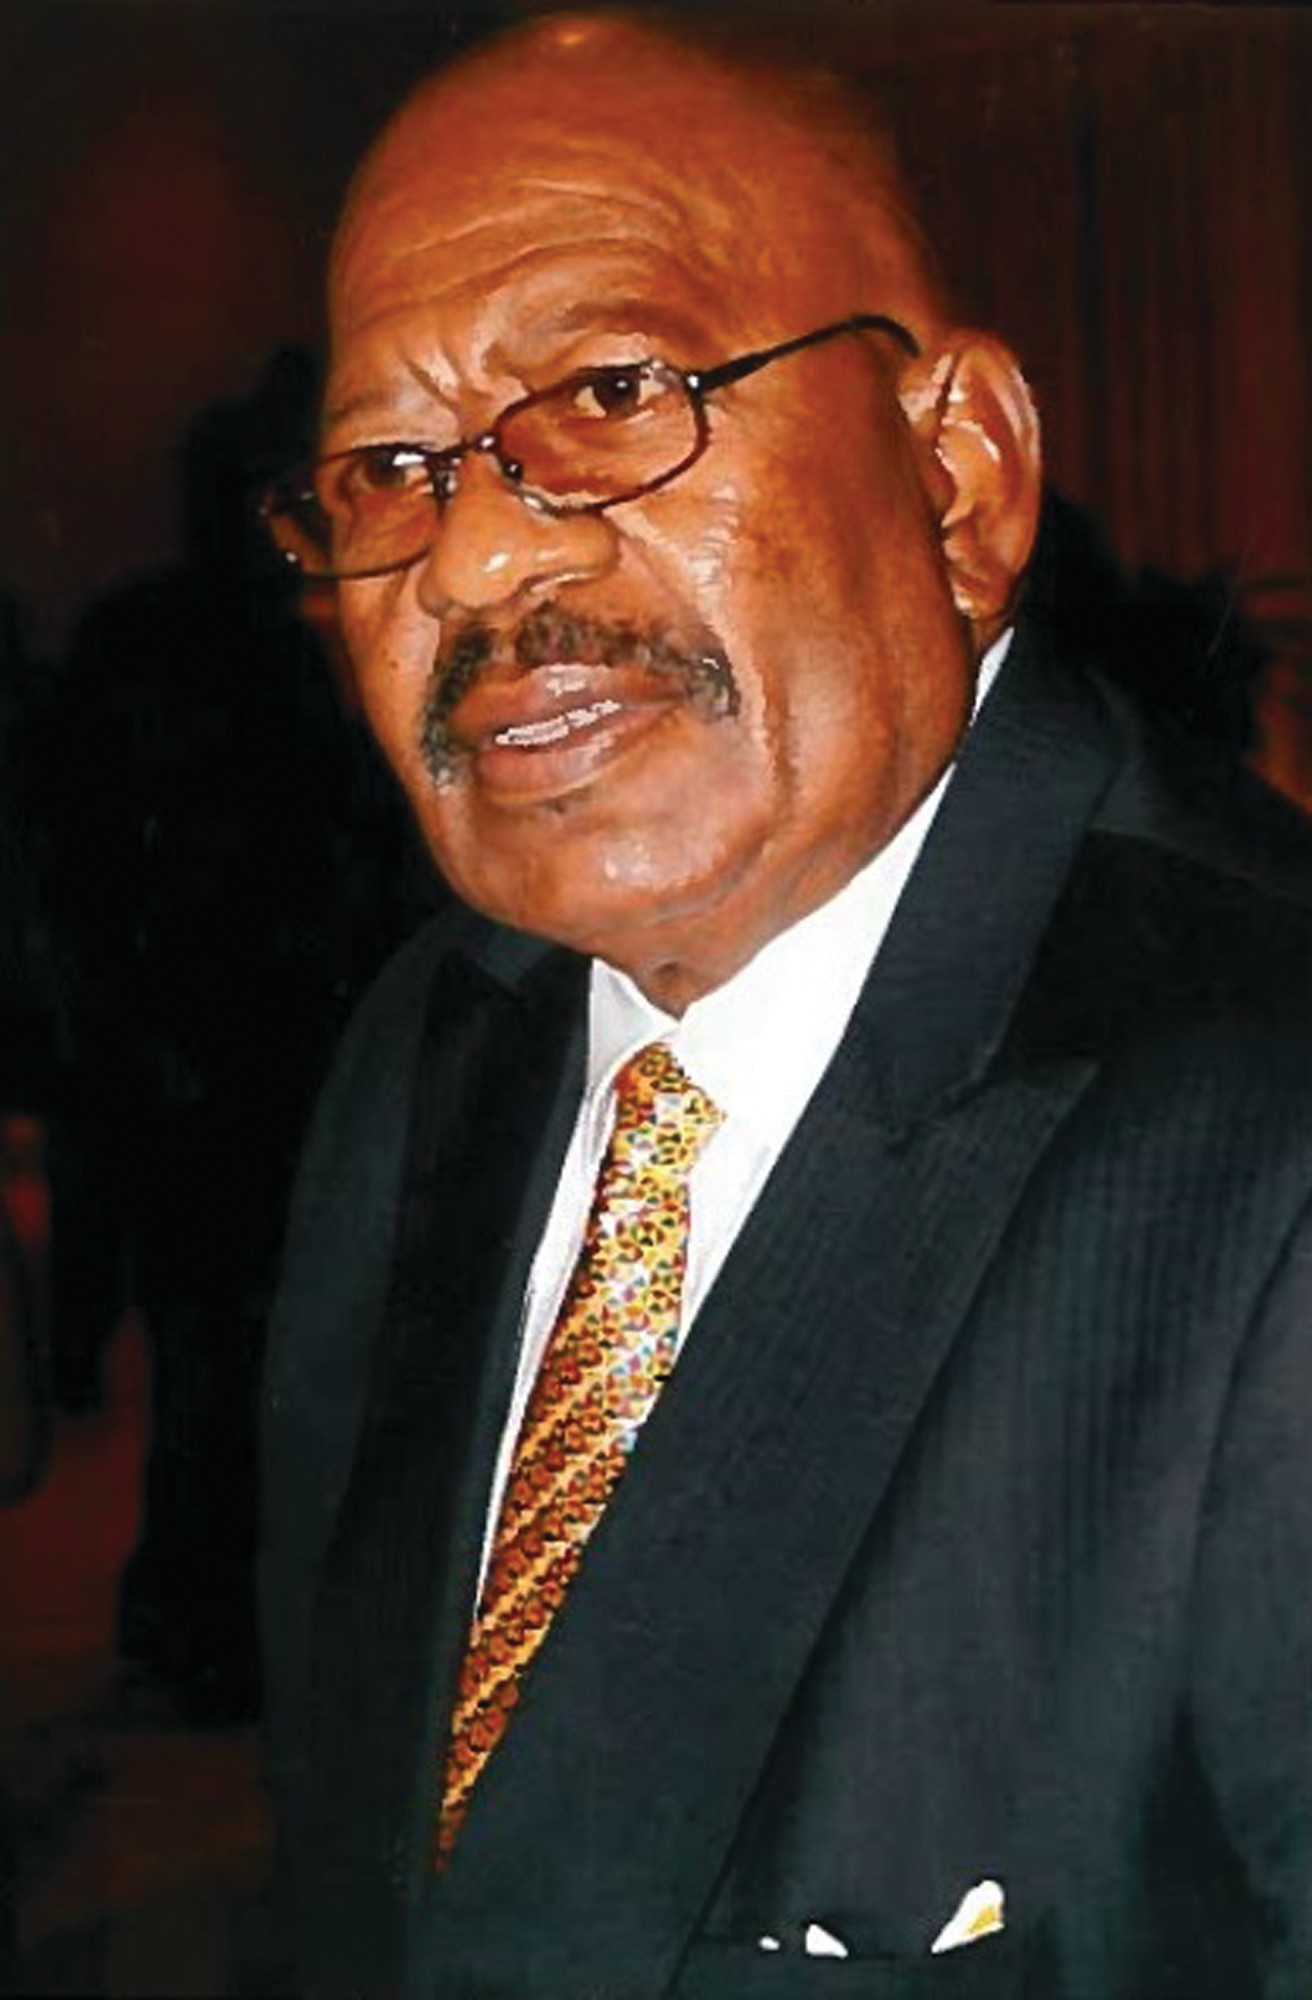 Hayes F. Samuels Jr. served as Clarendon County coroner and was a mortician. He was close with many people in the county and died Wednesday at 74.